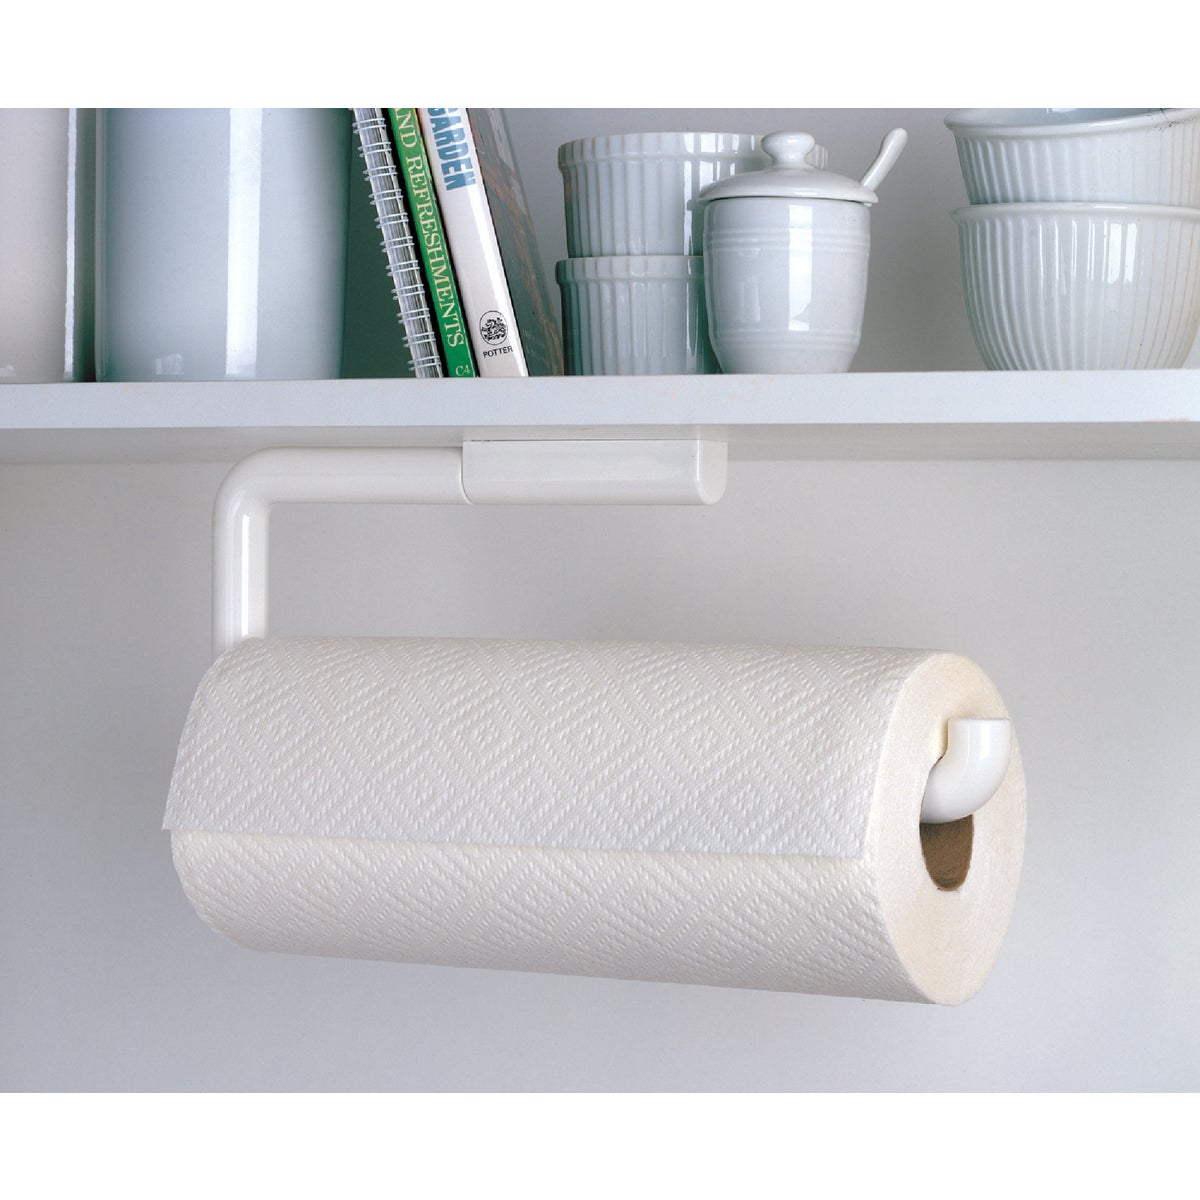 WH WL PAPER TOWEL HOLDER - 35001 by Interdesign Inc